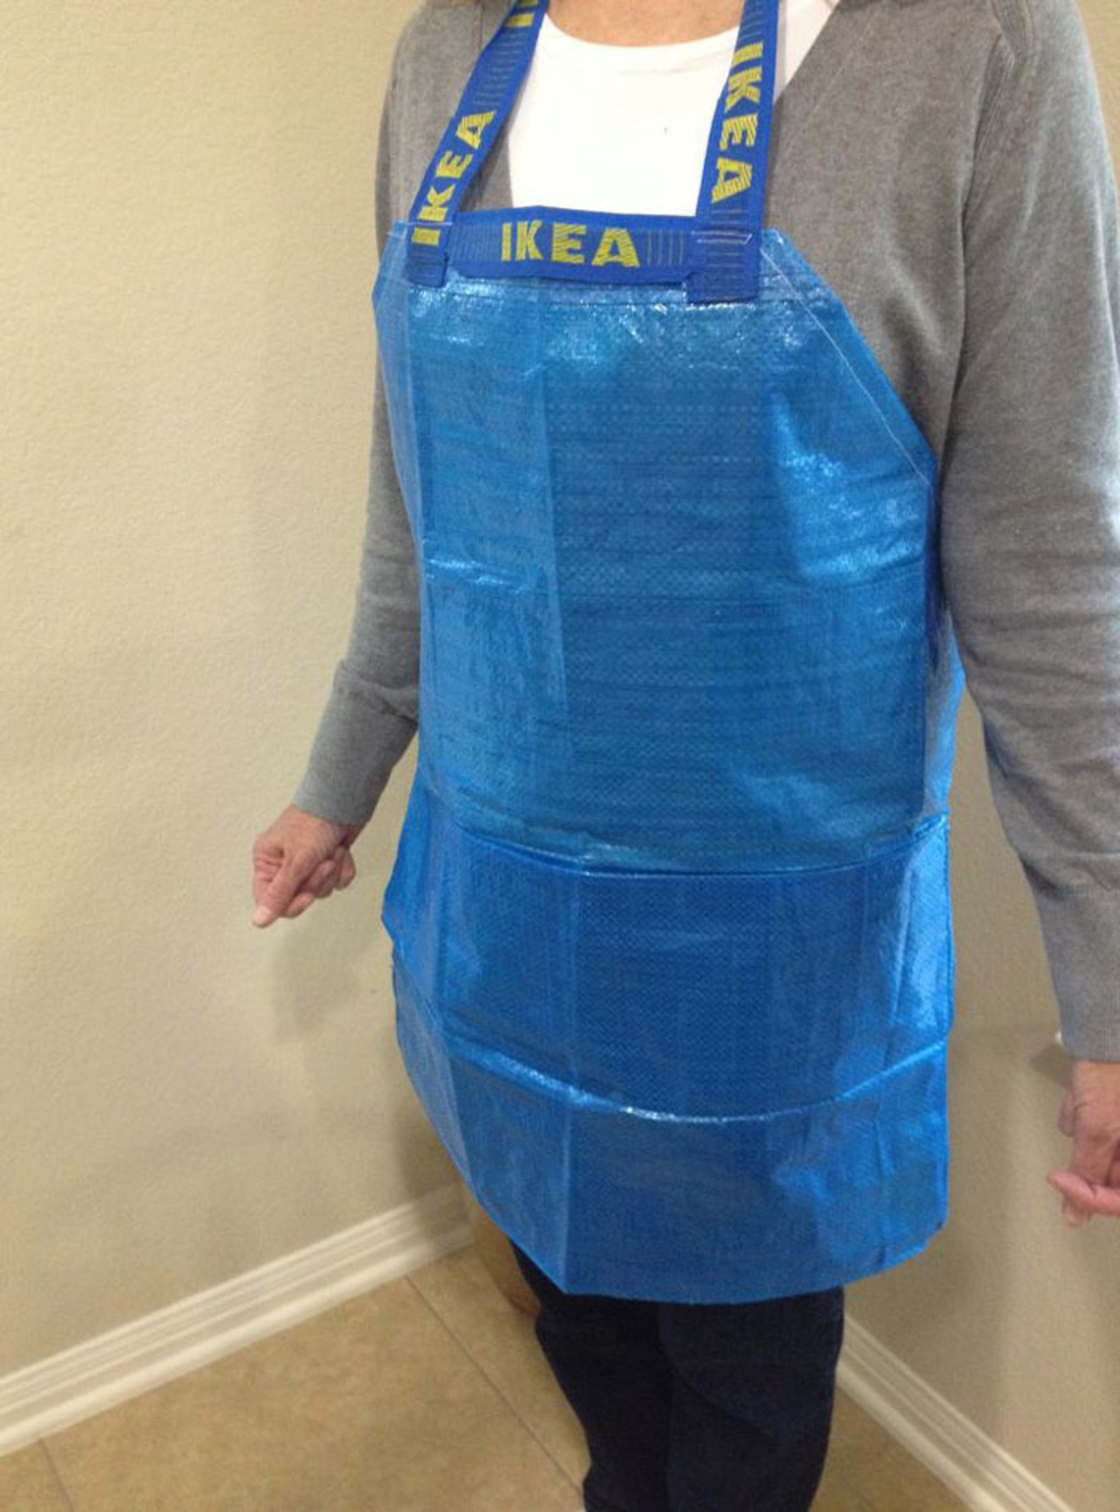 Thong, cap or shoes - The IKEA bag is now uncontrollable